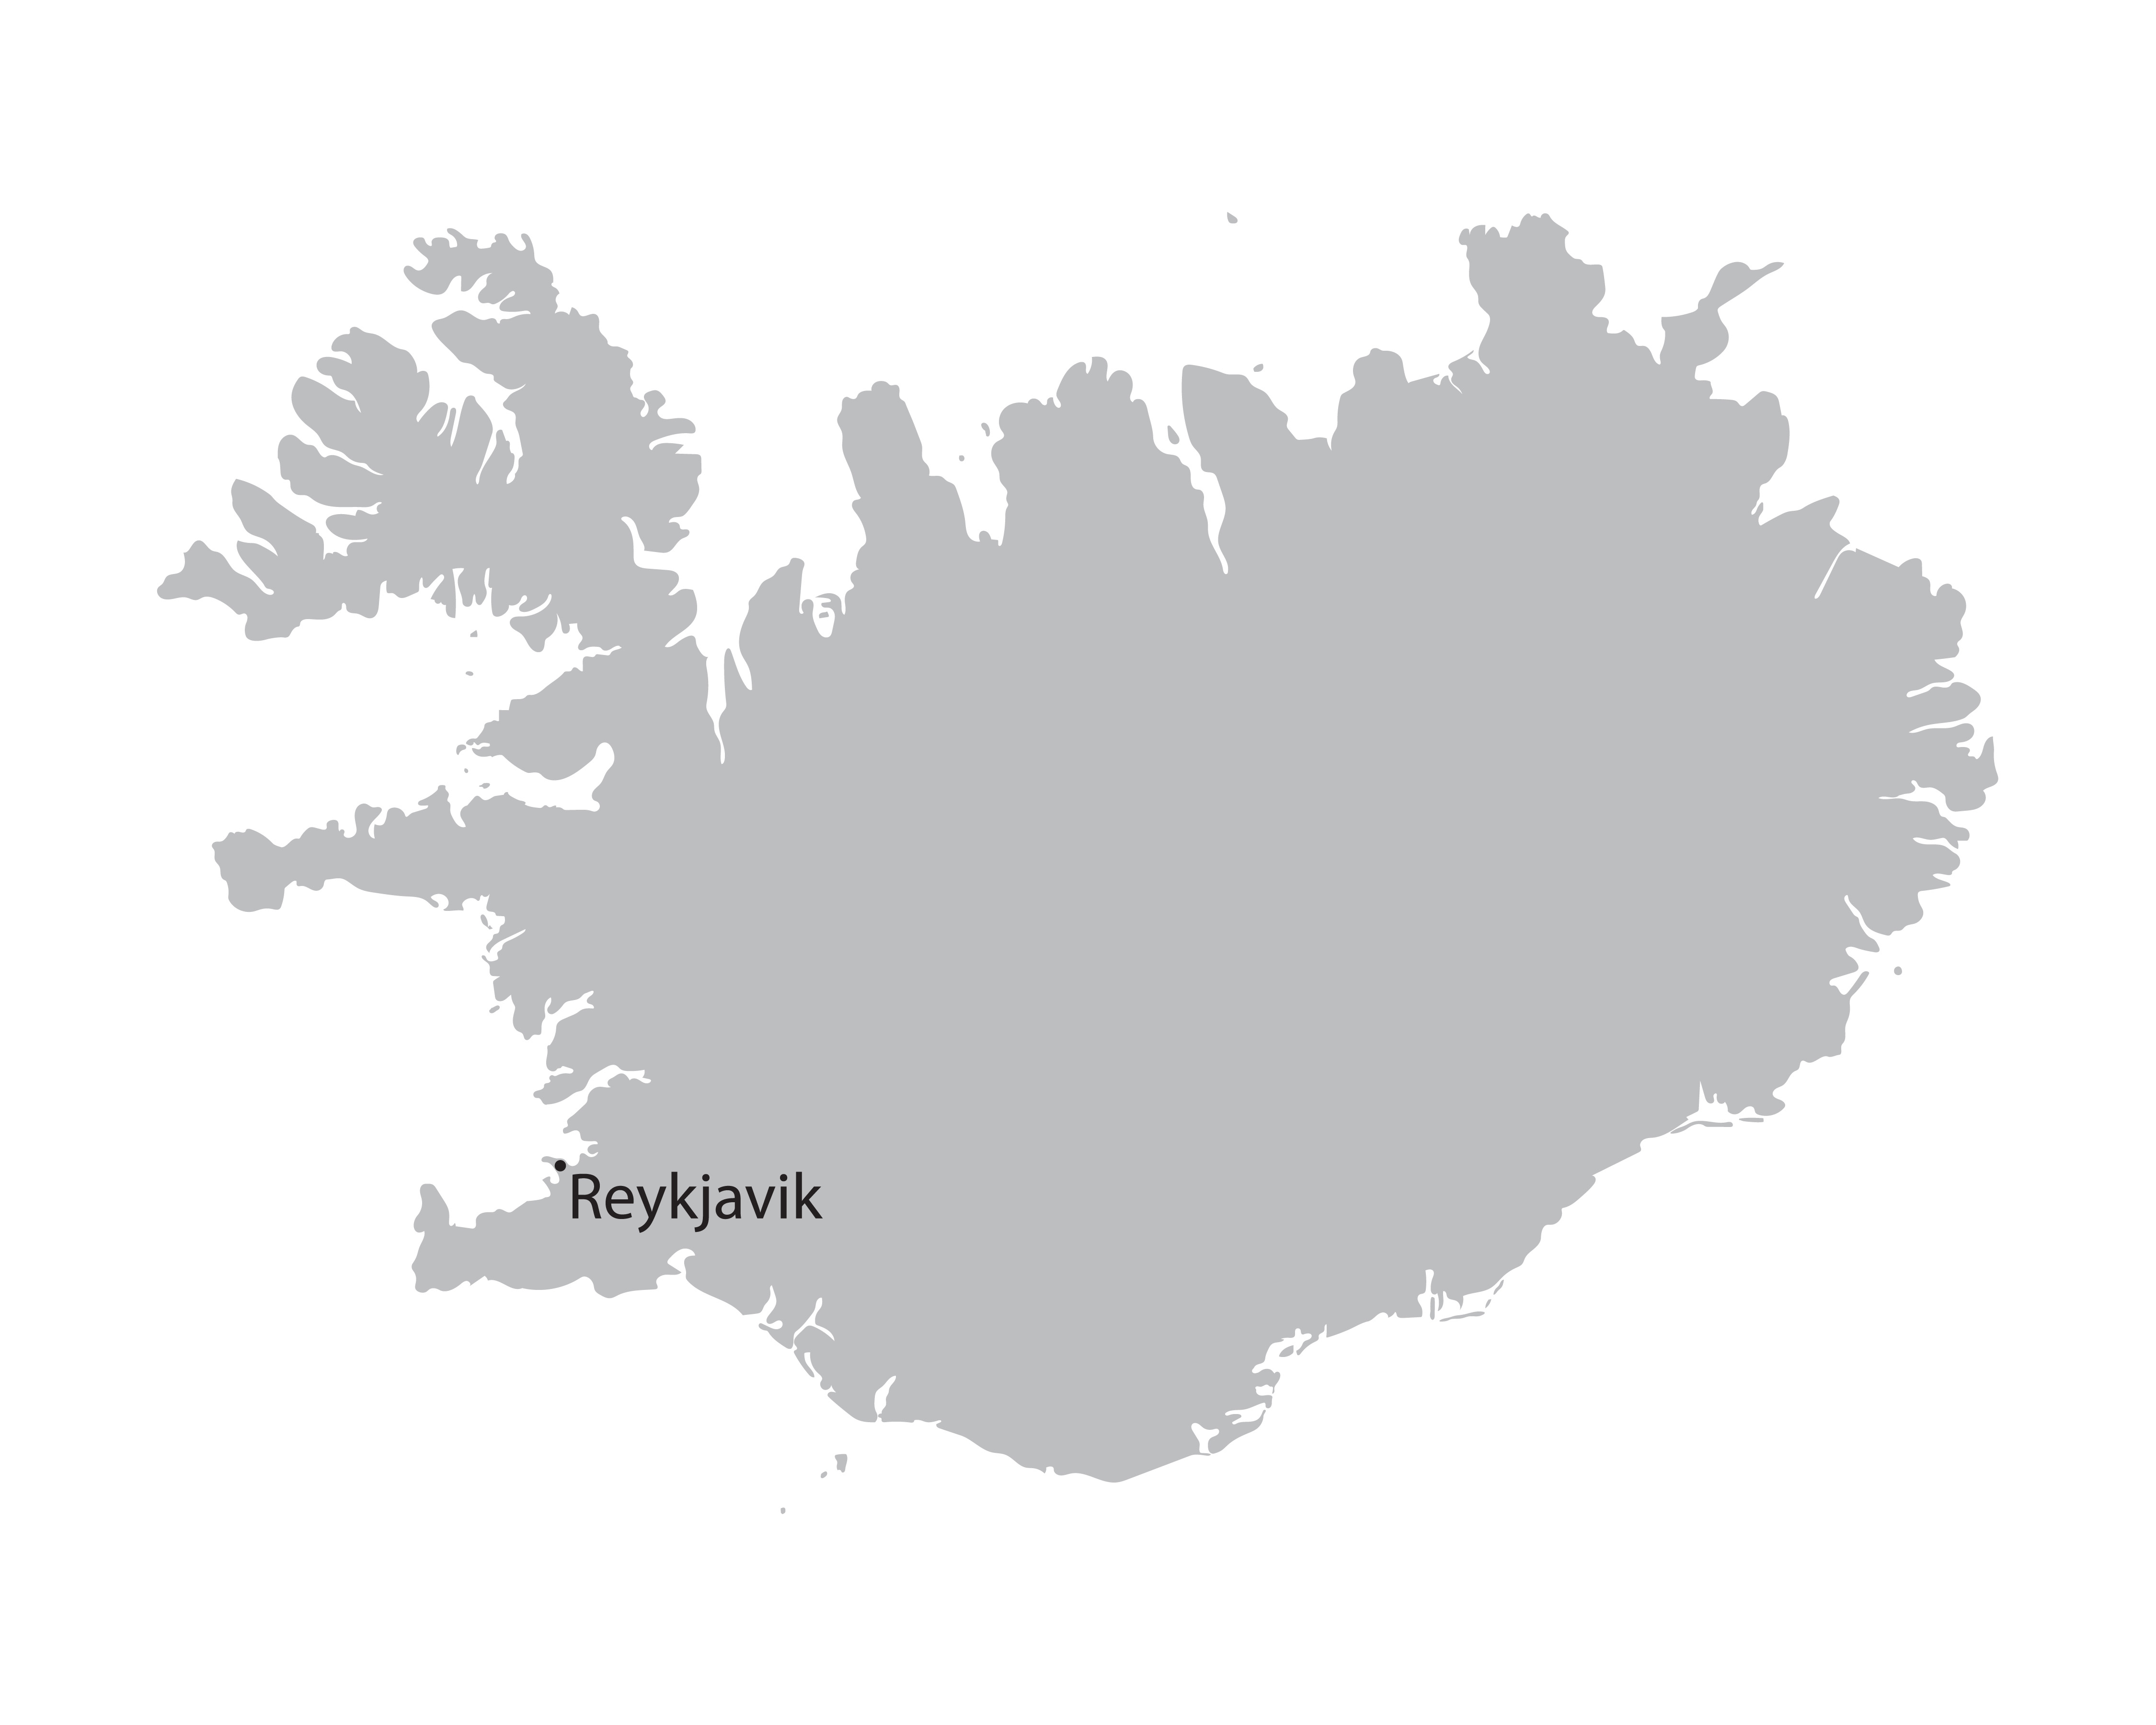 U.S. Deputy Secretary of Defense Bob Work recently visited Iceland to discuss future operations at Keflavik Air Base with Icelandic officials, Reykjavik Grapevine reports. (iStock)